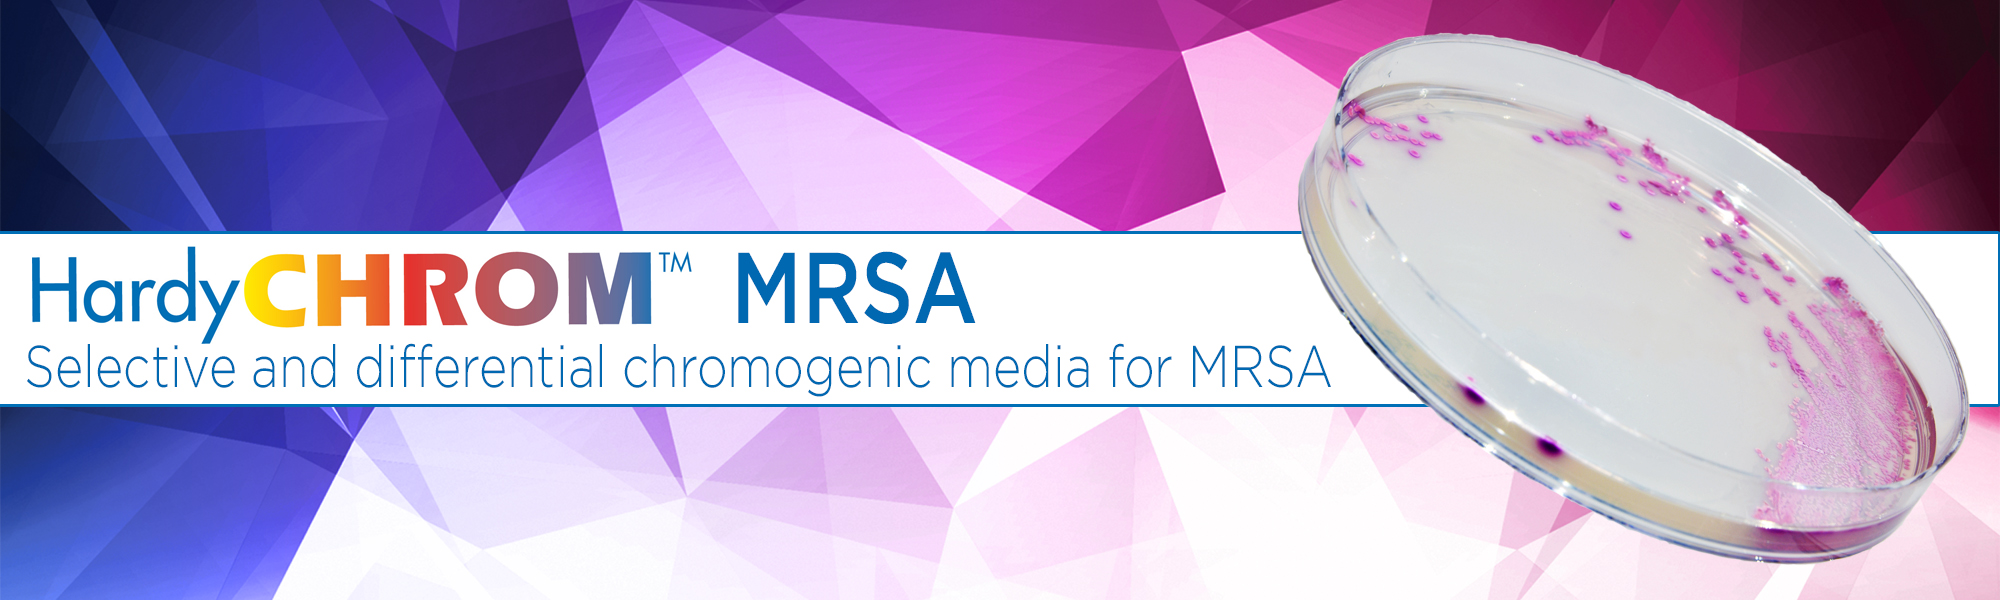 HardyCHROM MRSA Chromogenic selective and differential media for MRSA Methicillin resistant staphylococcus aureus